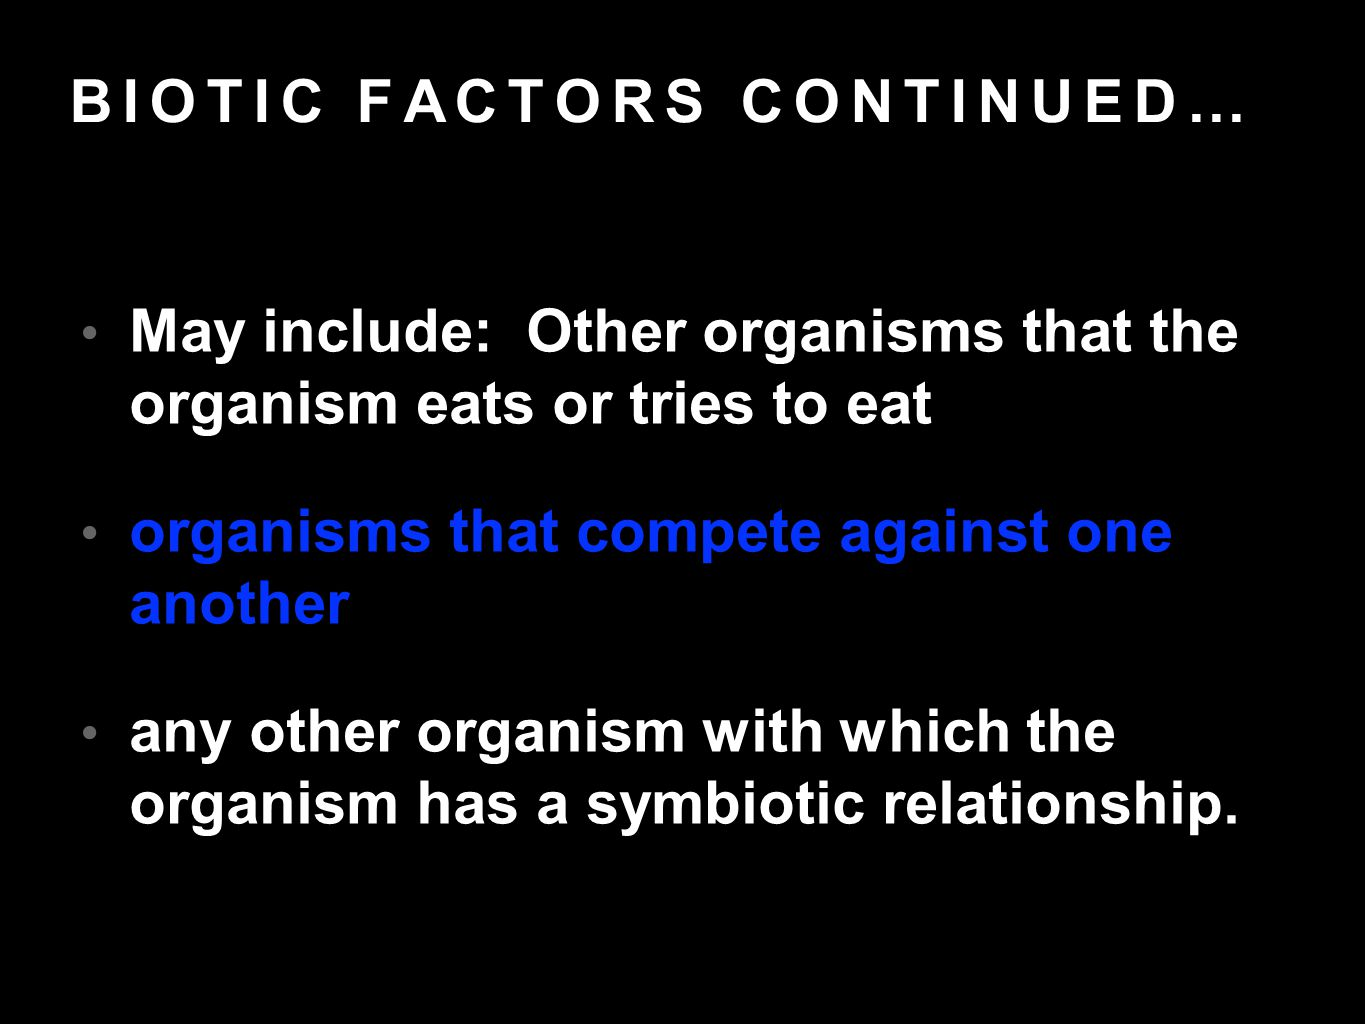 BIOTIC FACTORS CONTINUED… May include: Other organisms that the organism eats or tries to eat organisms that compete against one another any other organism with which the organism has a symbiotic relationship.